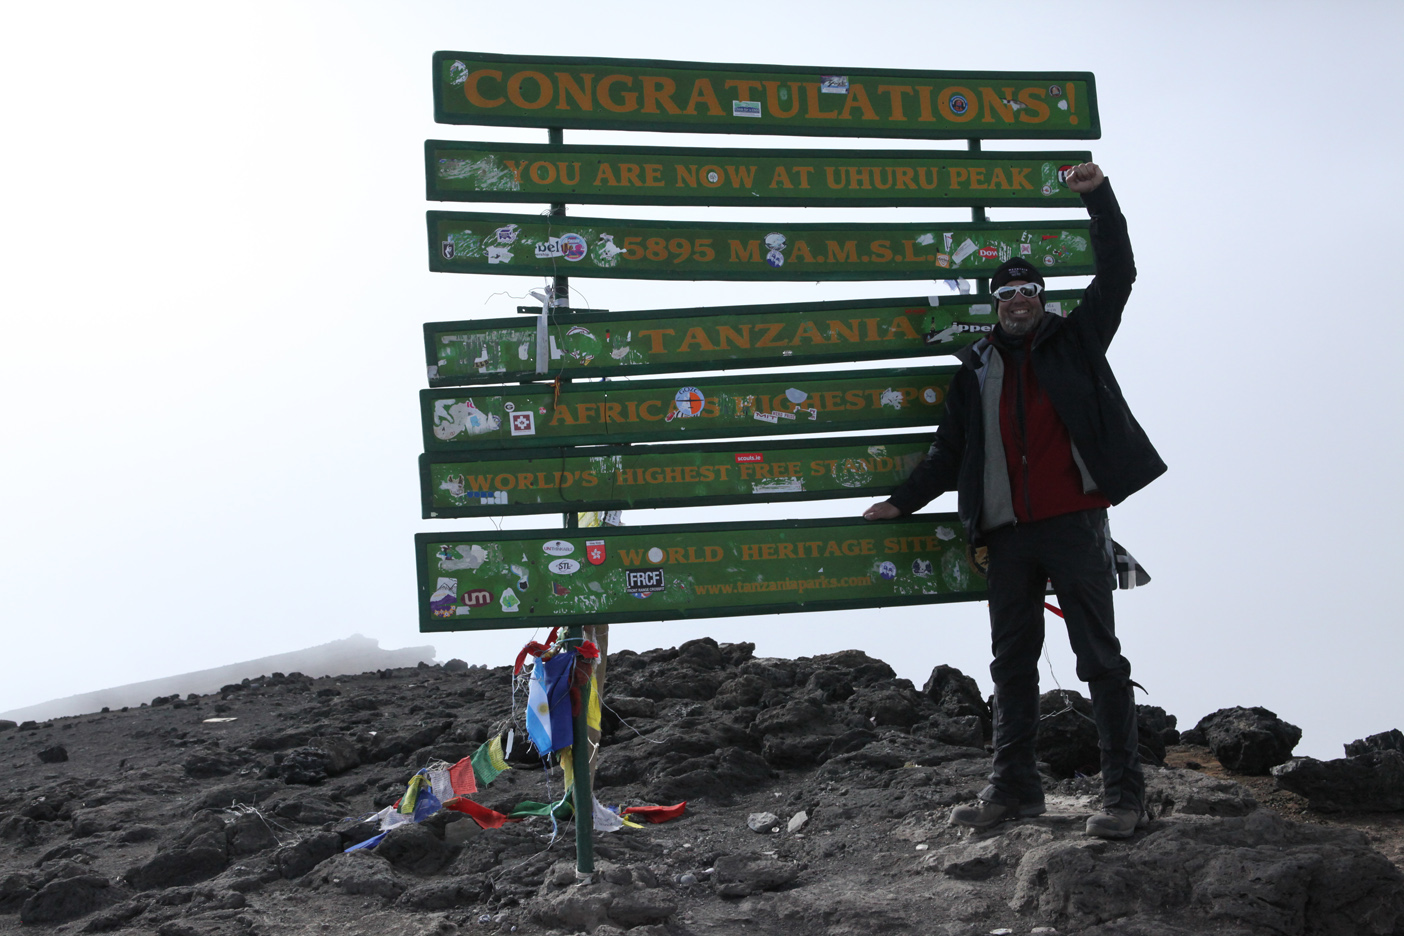 David McDowell at the summit of Mt. Kilimanjaro! Elevation 19,340 ft. achieved on September 22, 2013 at 3:20PM